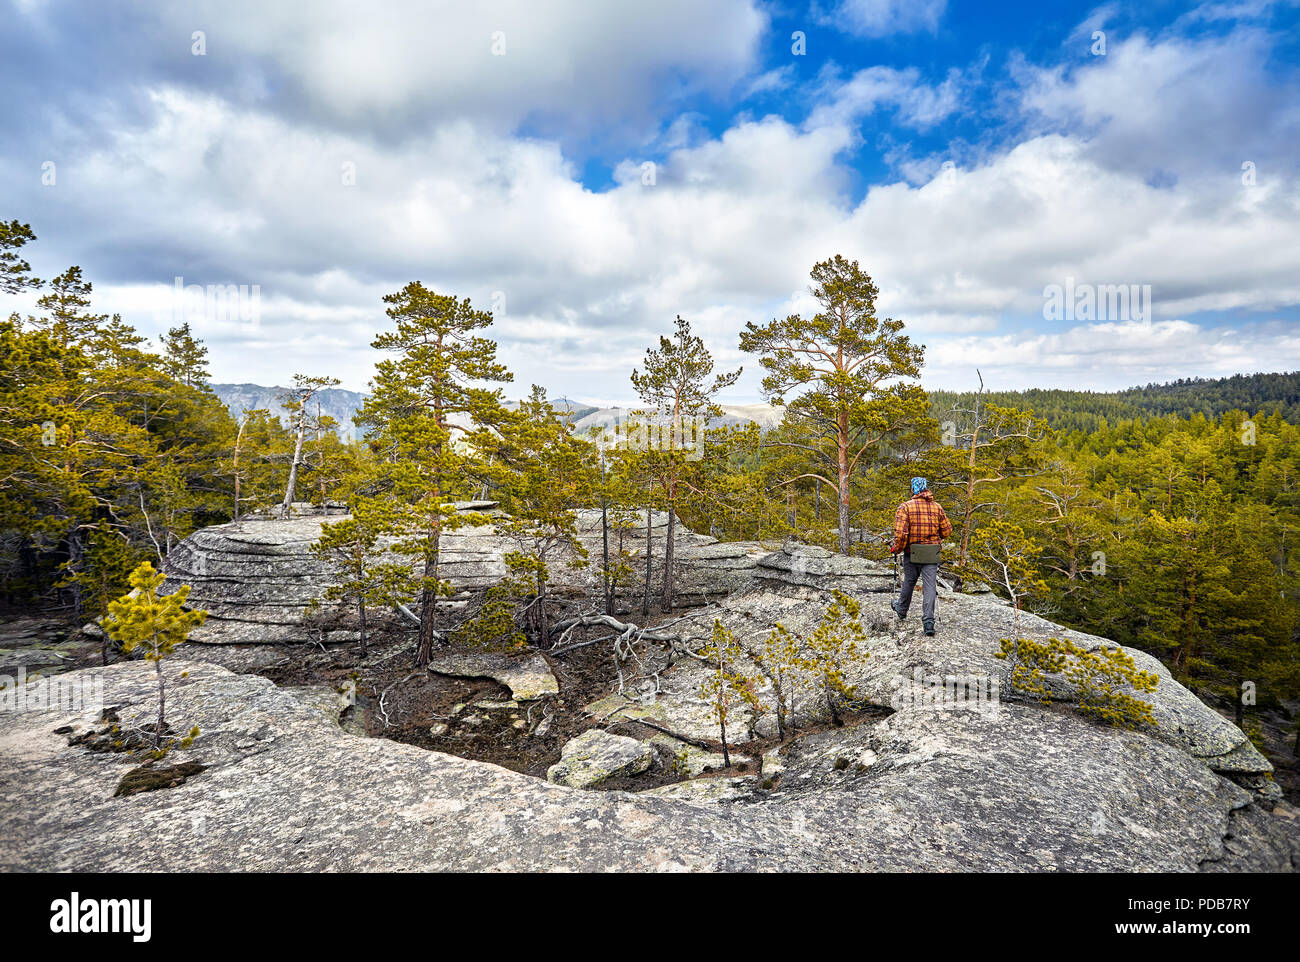 Man in brown jacket walking to the beautiful forest in Karkaraly national park in Karkaralinsk, Central Kazakhstan - Stock Image